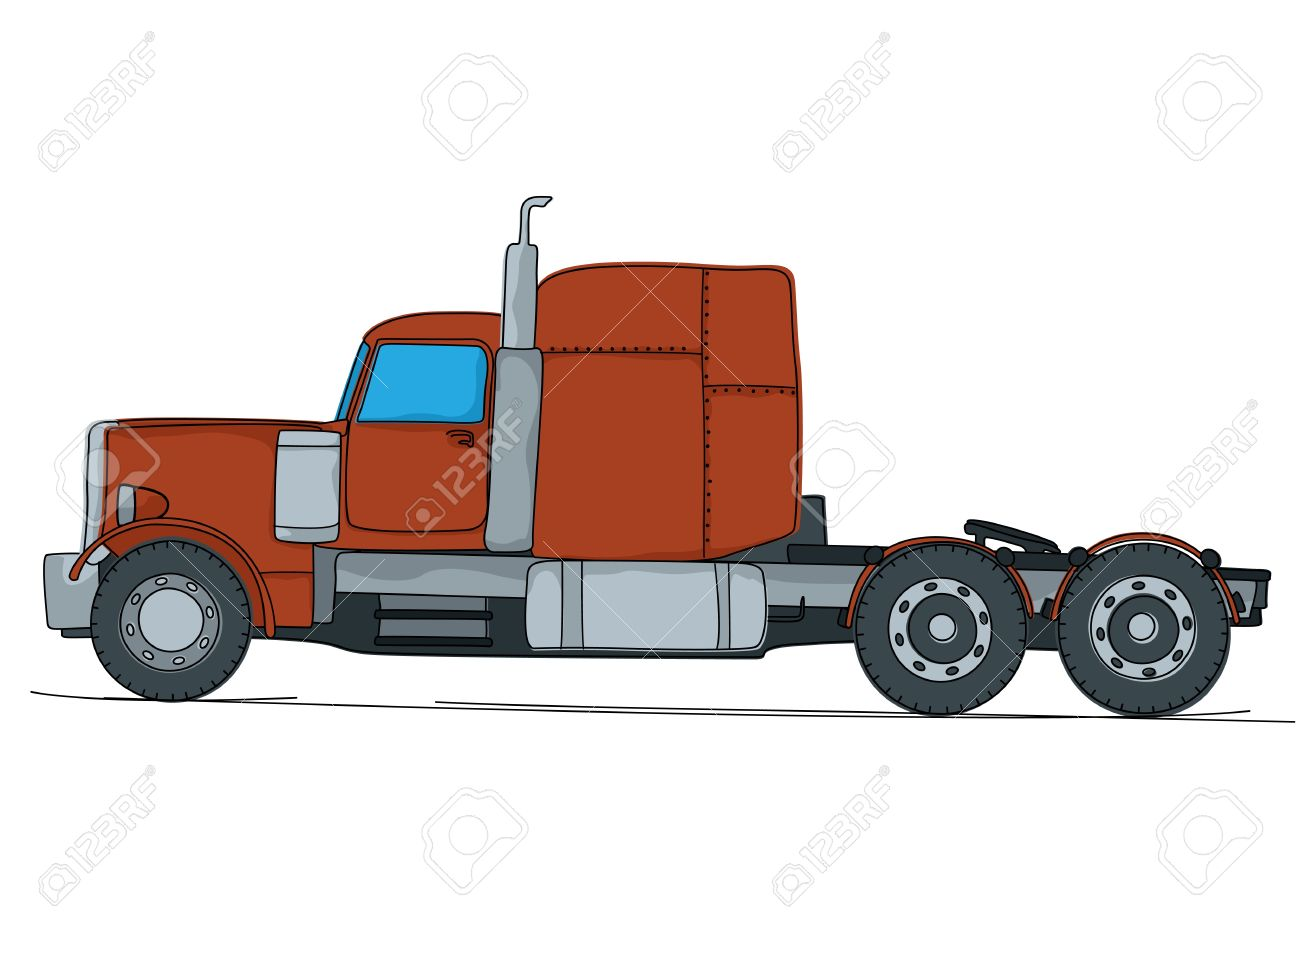 Cartoon drawing of a big red truck isolaed on white background stock vector 20671547